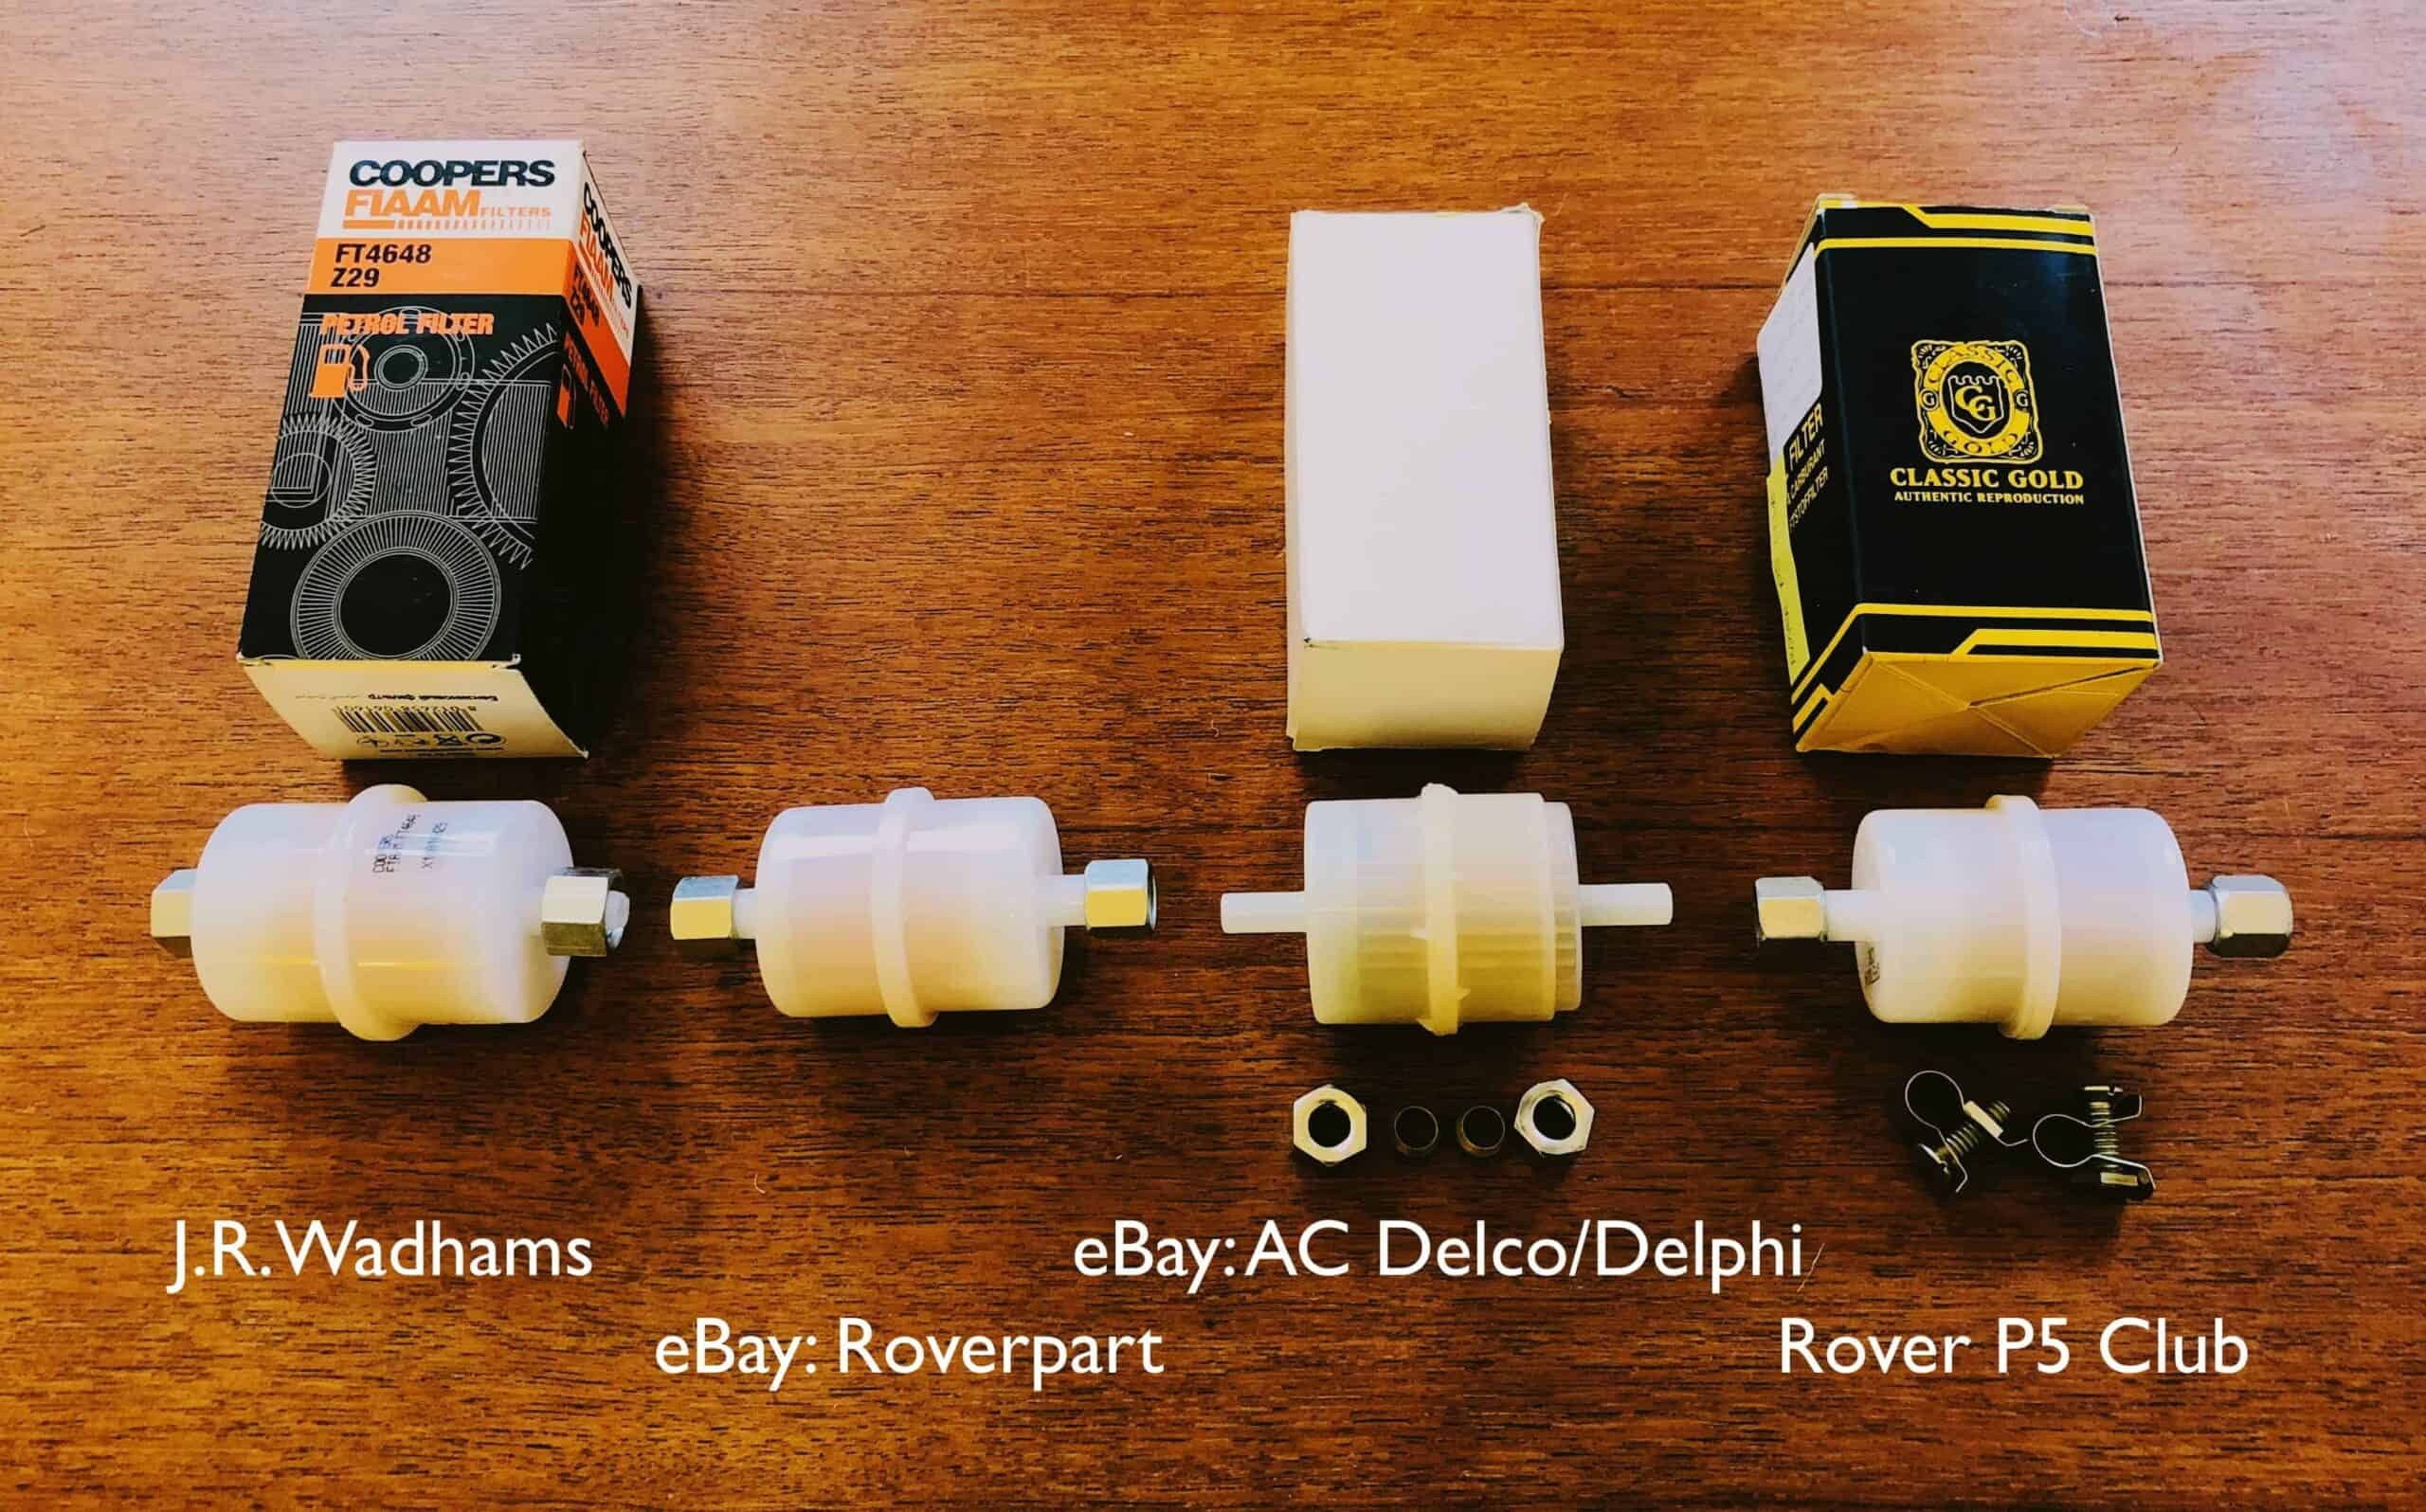 Rover P5B Fuel Filter Safety Comparison